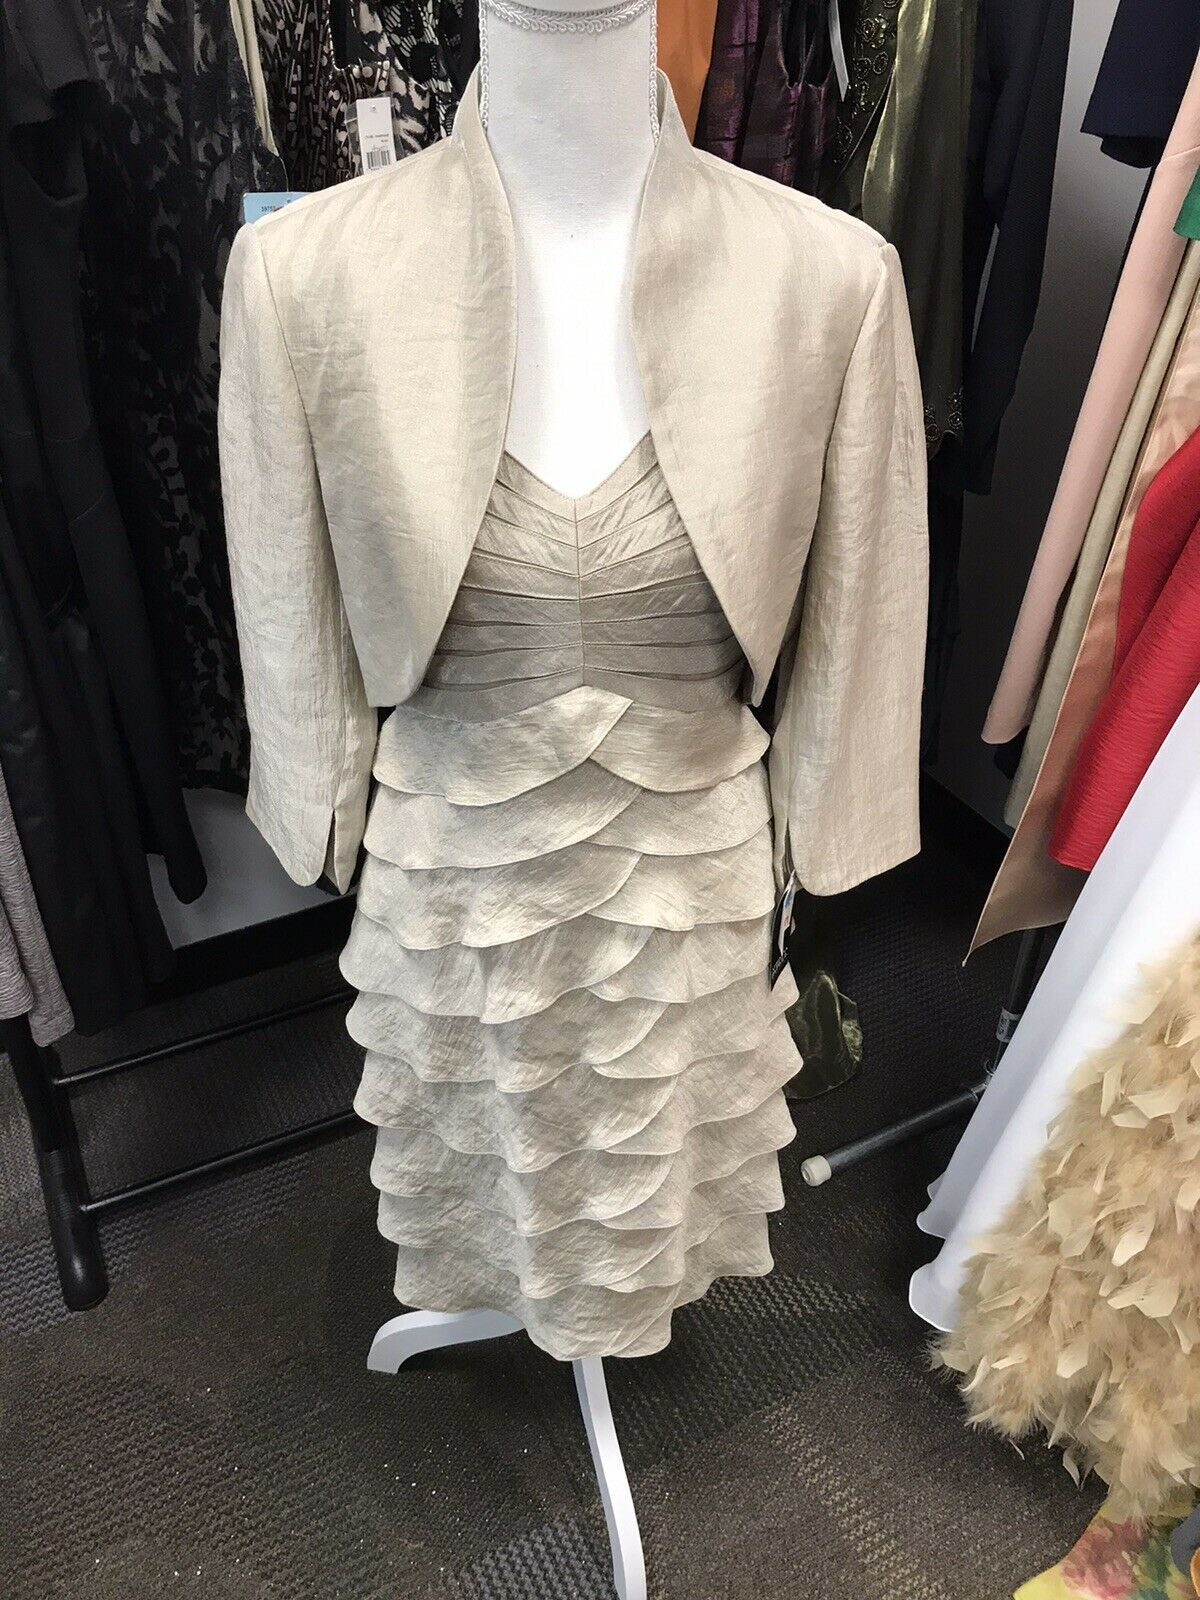 Adrianna Papell Mother Of The Bride/Groom 2 Piece Jacket Formal Dress Size 8